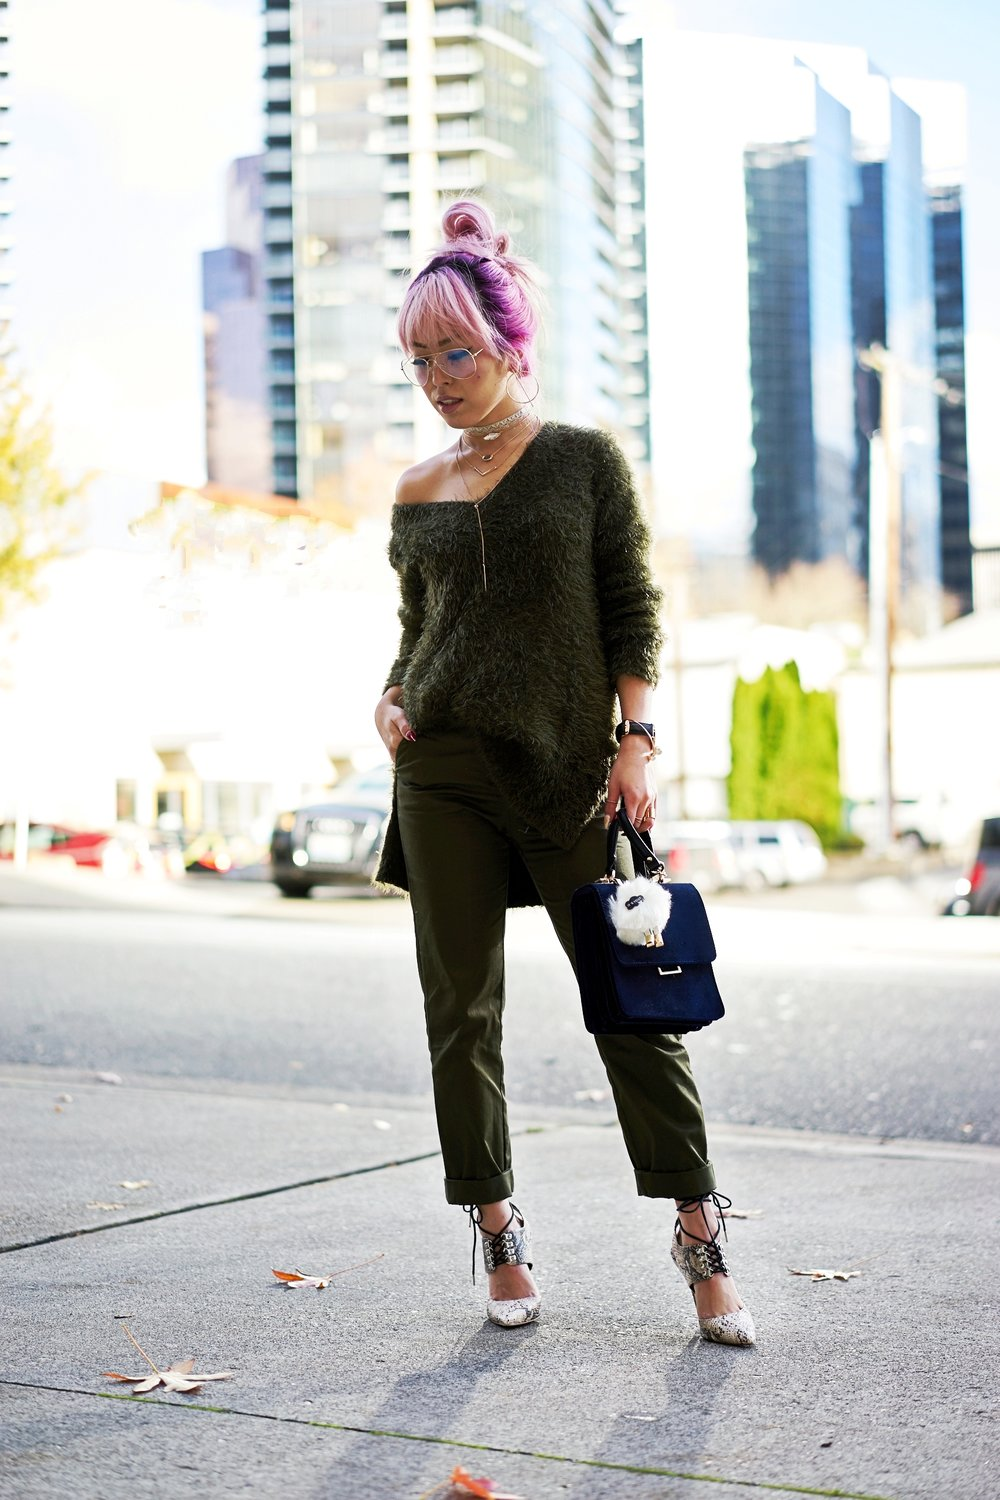 H&M olive chunky sweater-H&M cropped trousers-ASOS python lace-up pumps-ZARA navy velvet bag-mango earrings-Daniel Wellington Watch-Clear Lens aviator-Aika's Love Closet-Seattle Style blogger-japanese-pink hair-colored hair 2